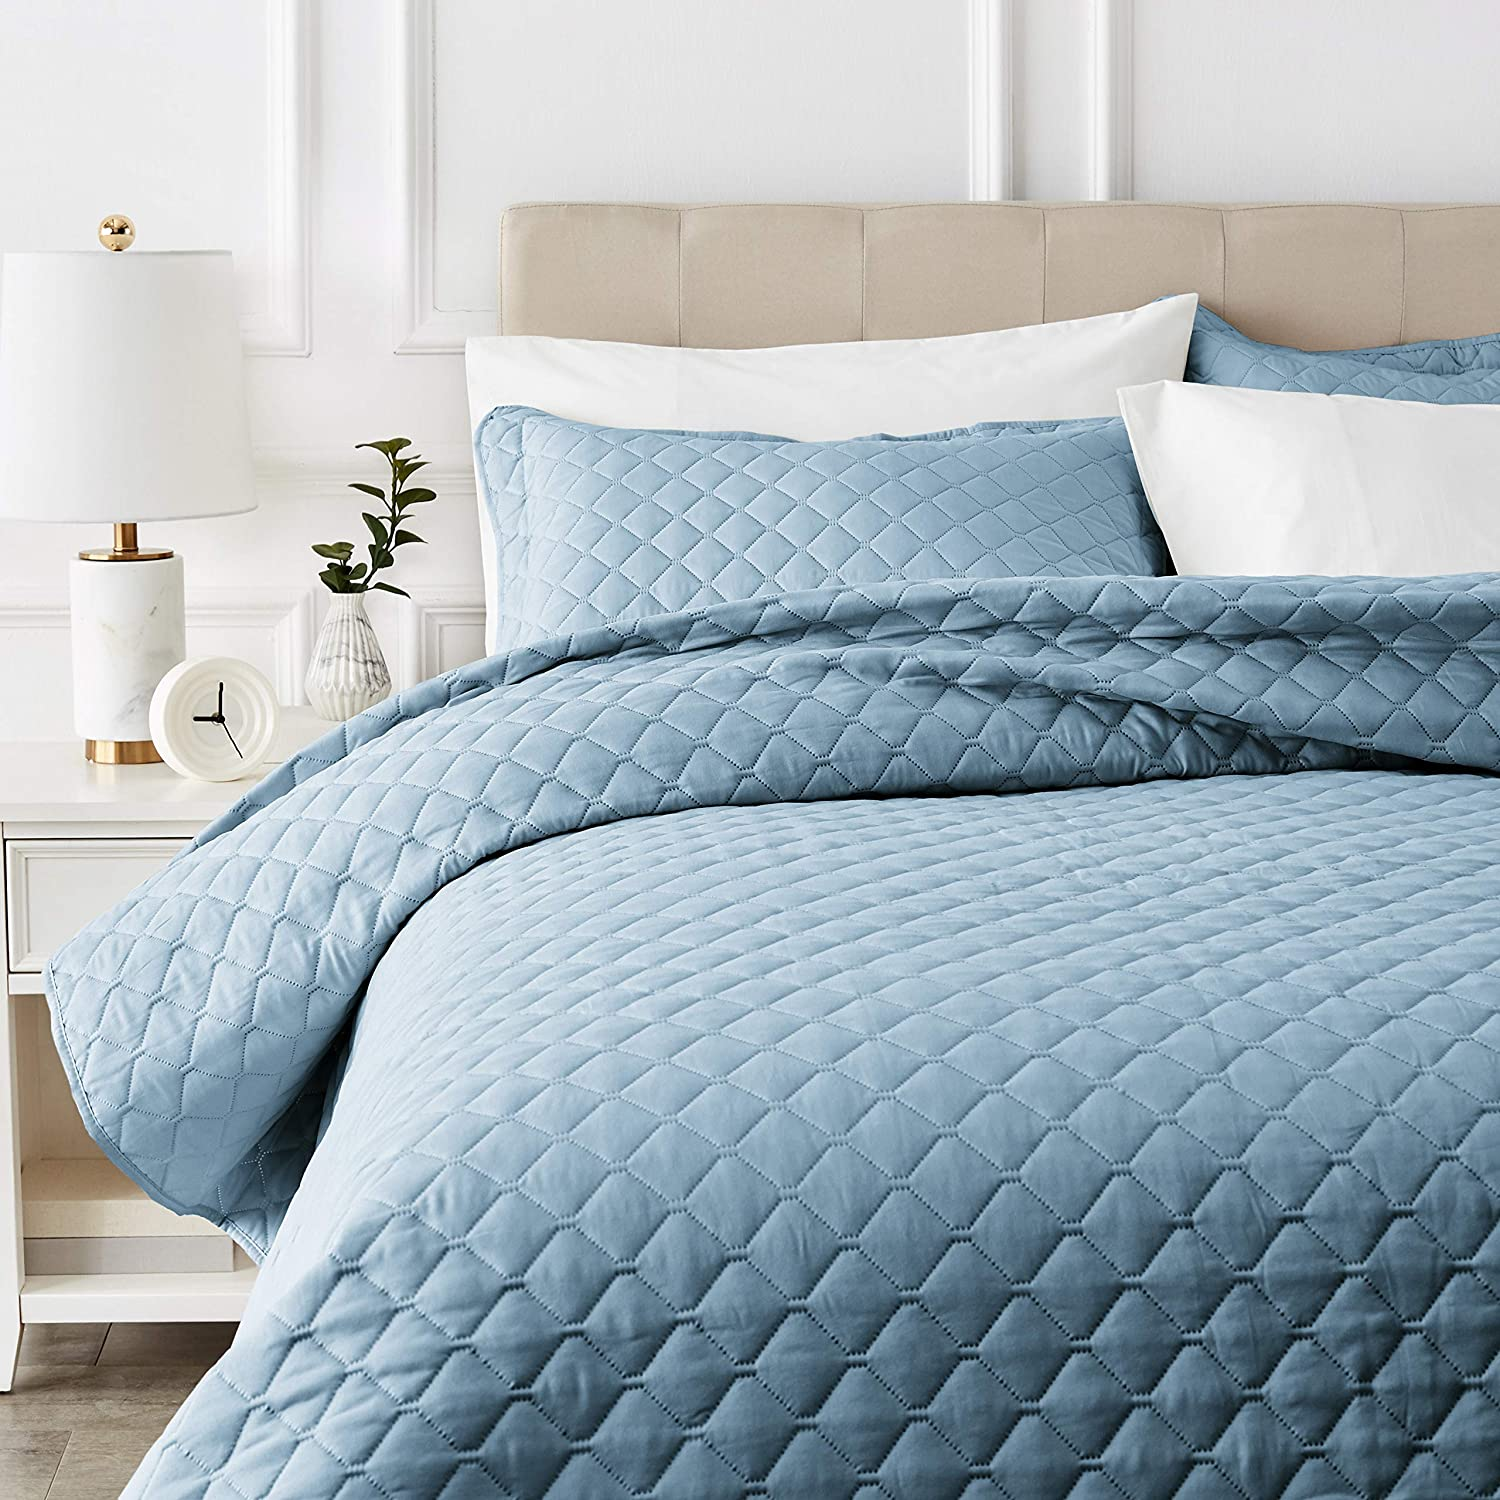 AmazonBasics Oversized Embossed Coverlet - King, Spa Blue Diamond